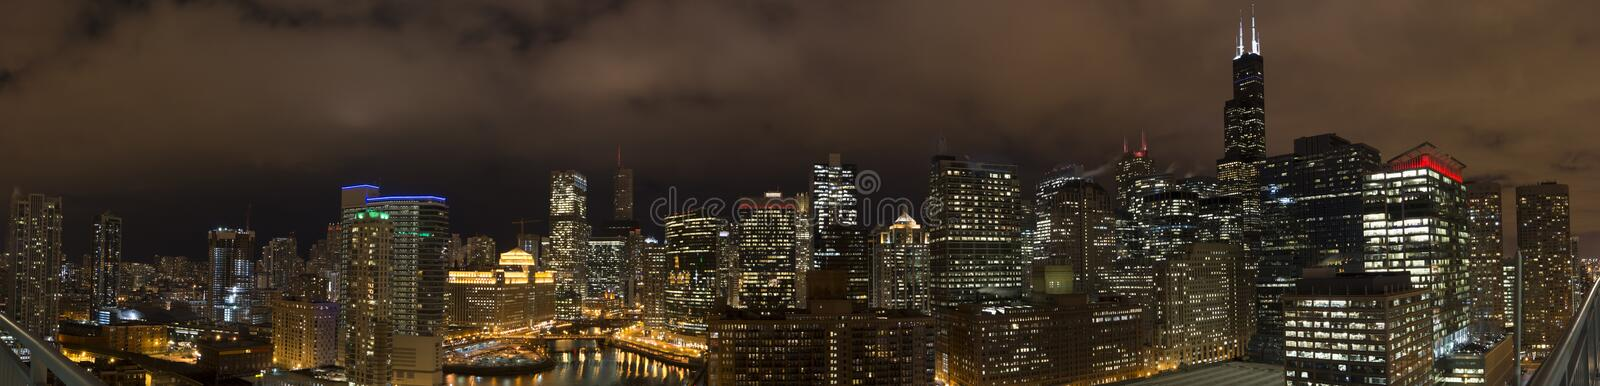 Download Chicago Skyline stock photo. Image of wolfe, chicago - 31365392